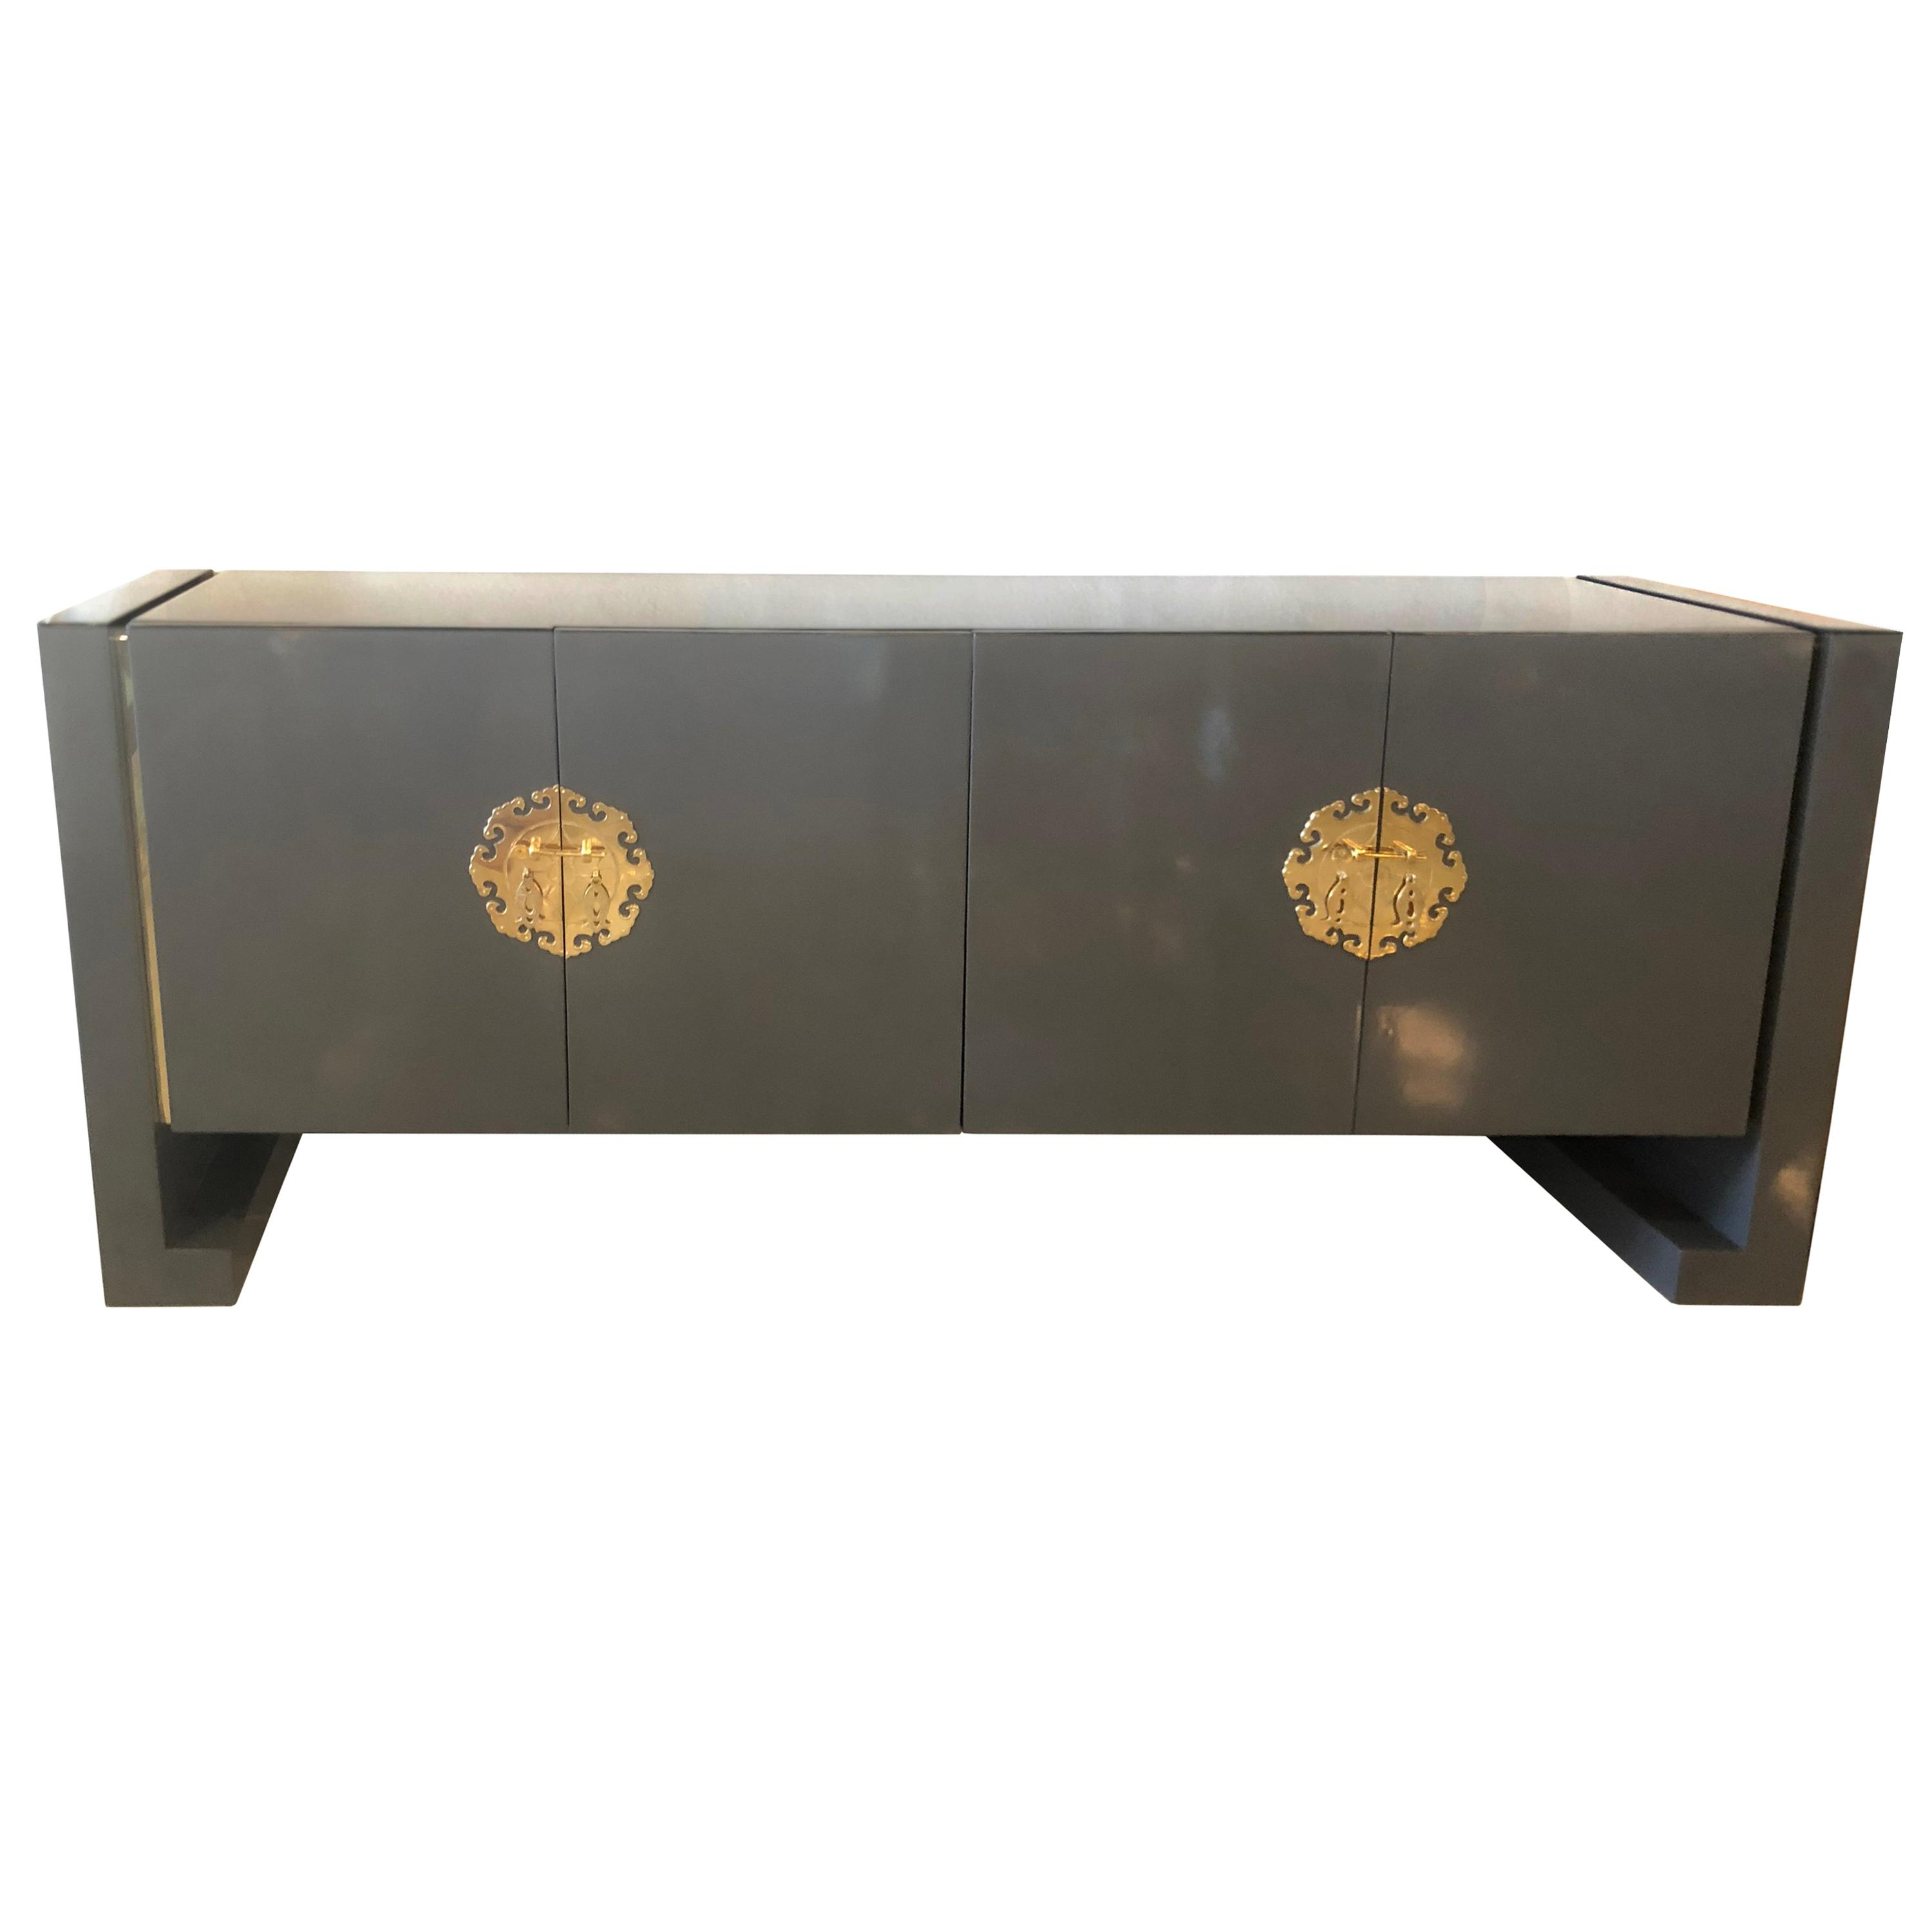 Current Rossi Large Sideboards In Ebonized Credenzastewartstown Furniture Company At 1stdibs (View 6 of 20)